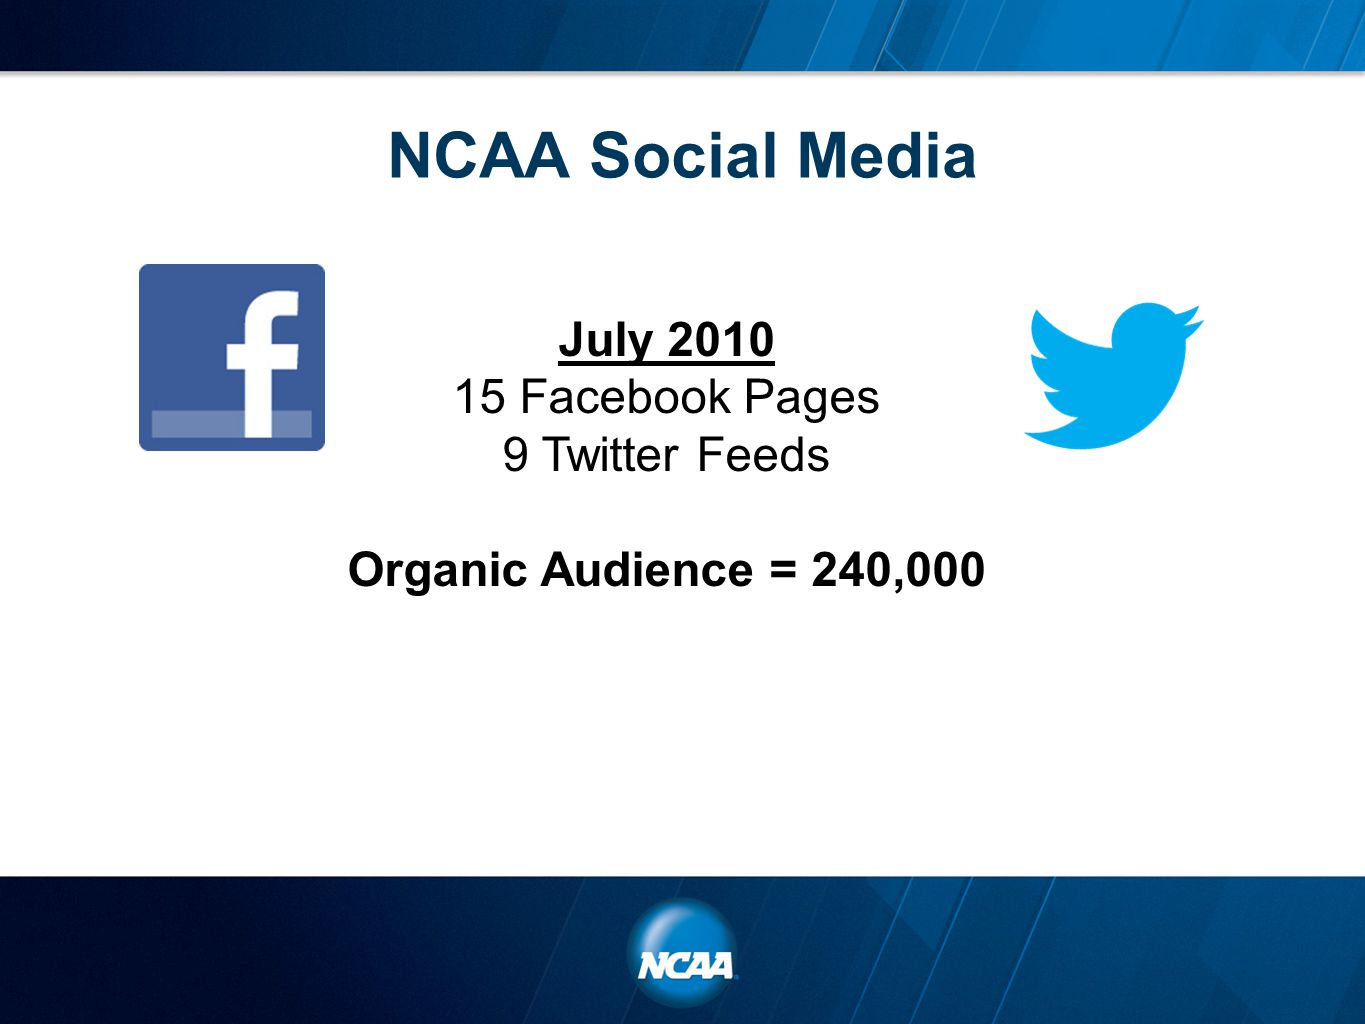 NCAA Social Media July 2010 15 Facebook Pages 9 Twitter Feeds Organic Audience = 240,000